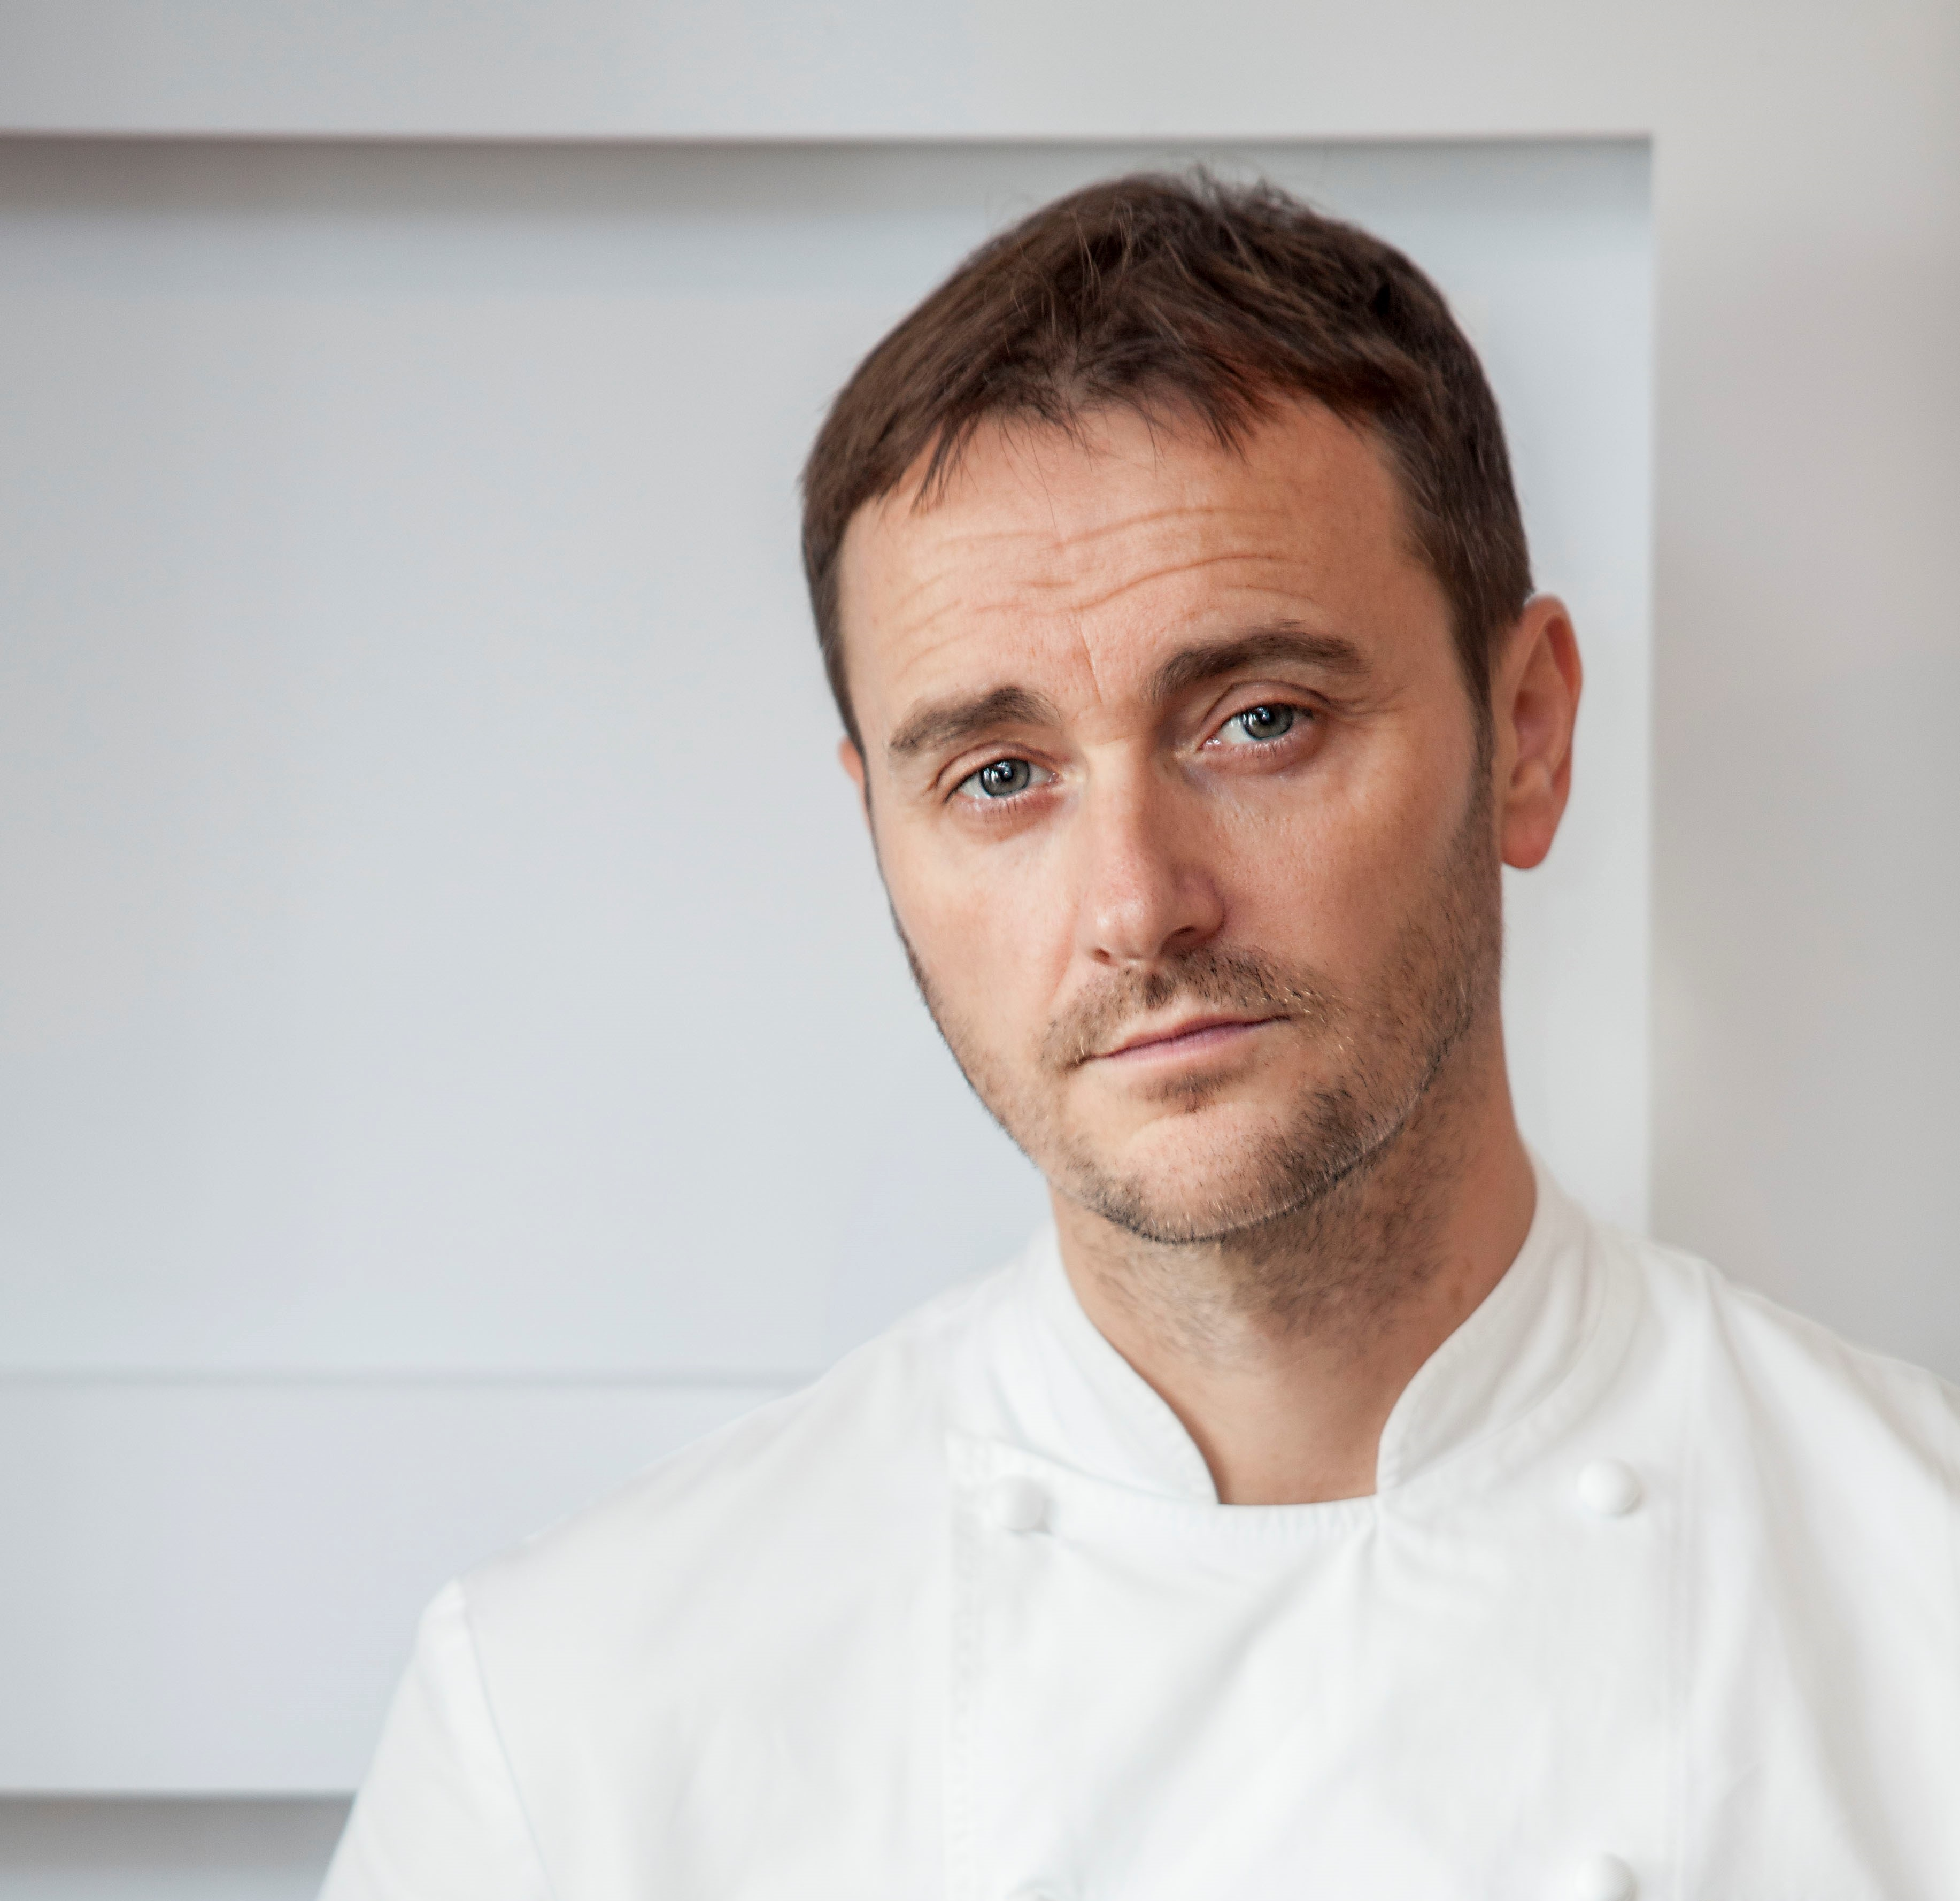 Interview with Celebrity Chef Jason Atherton